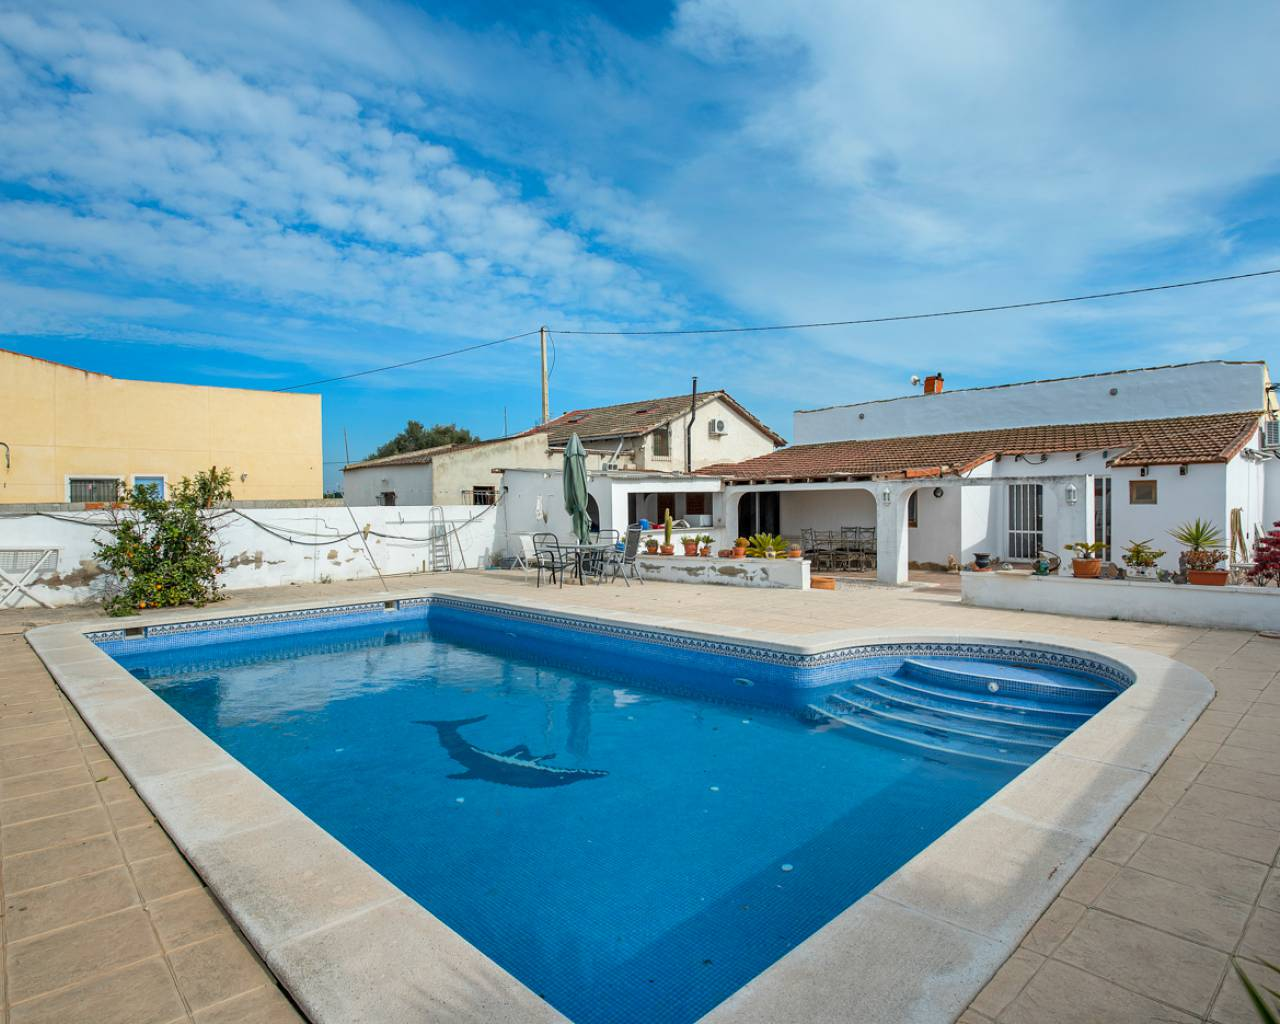 For sale: 3 bedroom finca in Dolores, Costa Blanca